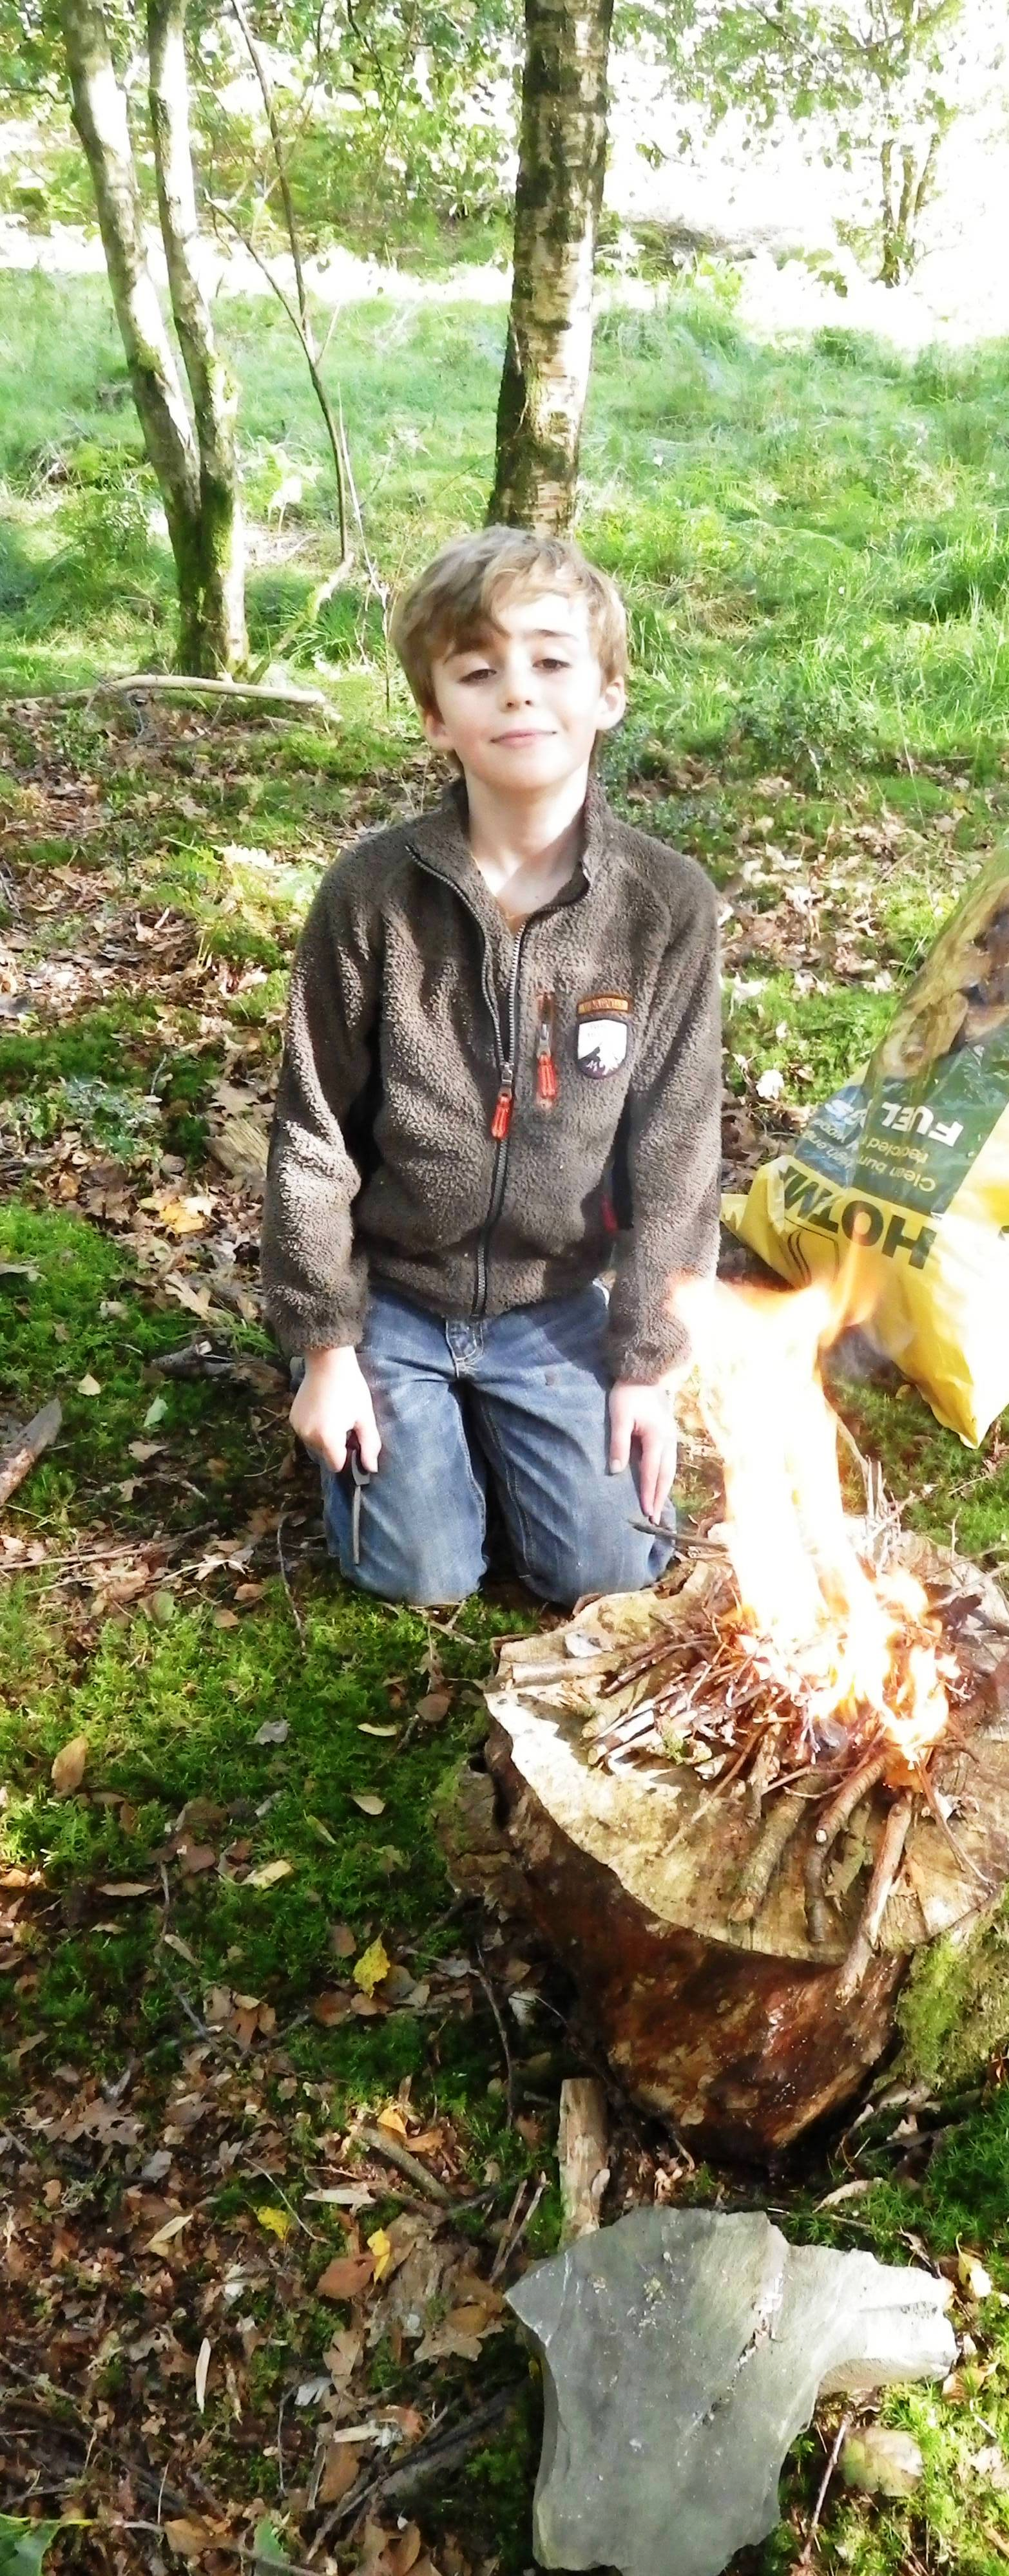 Making a fire